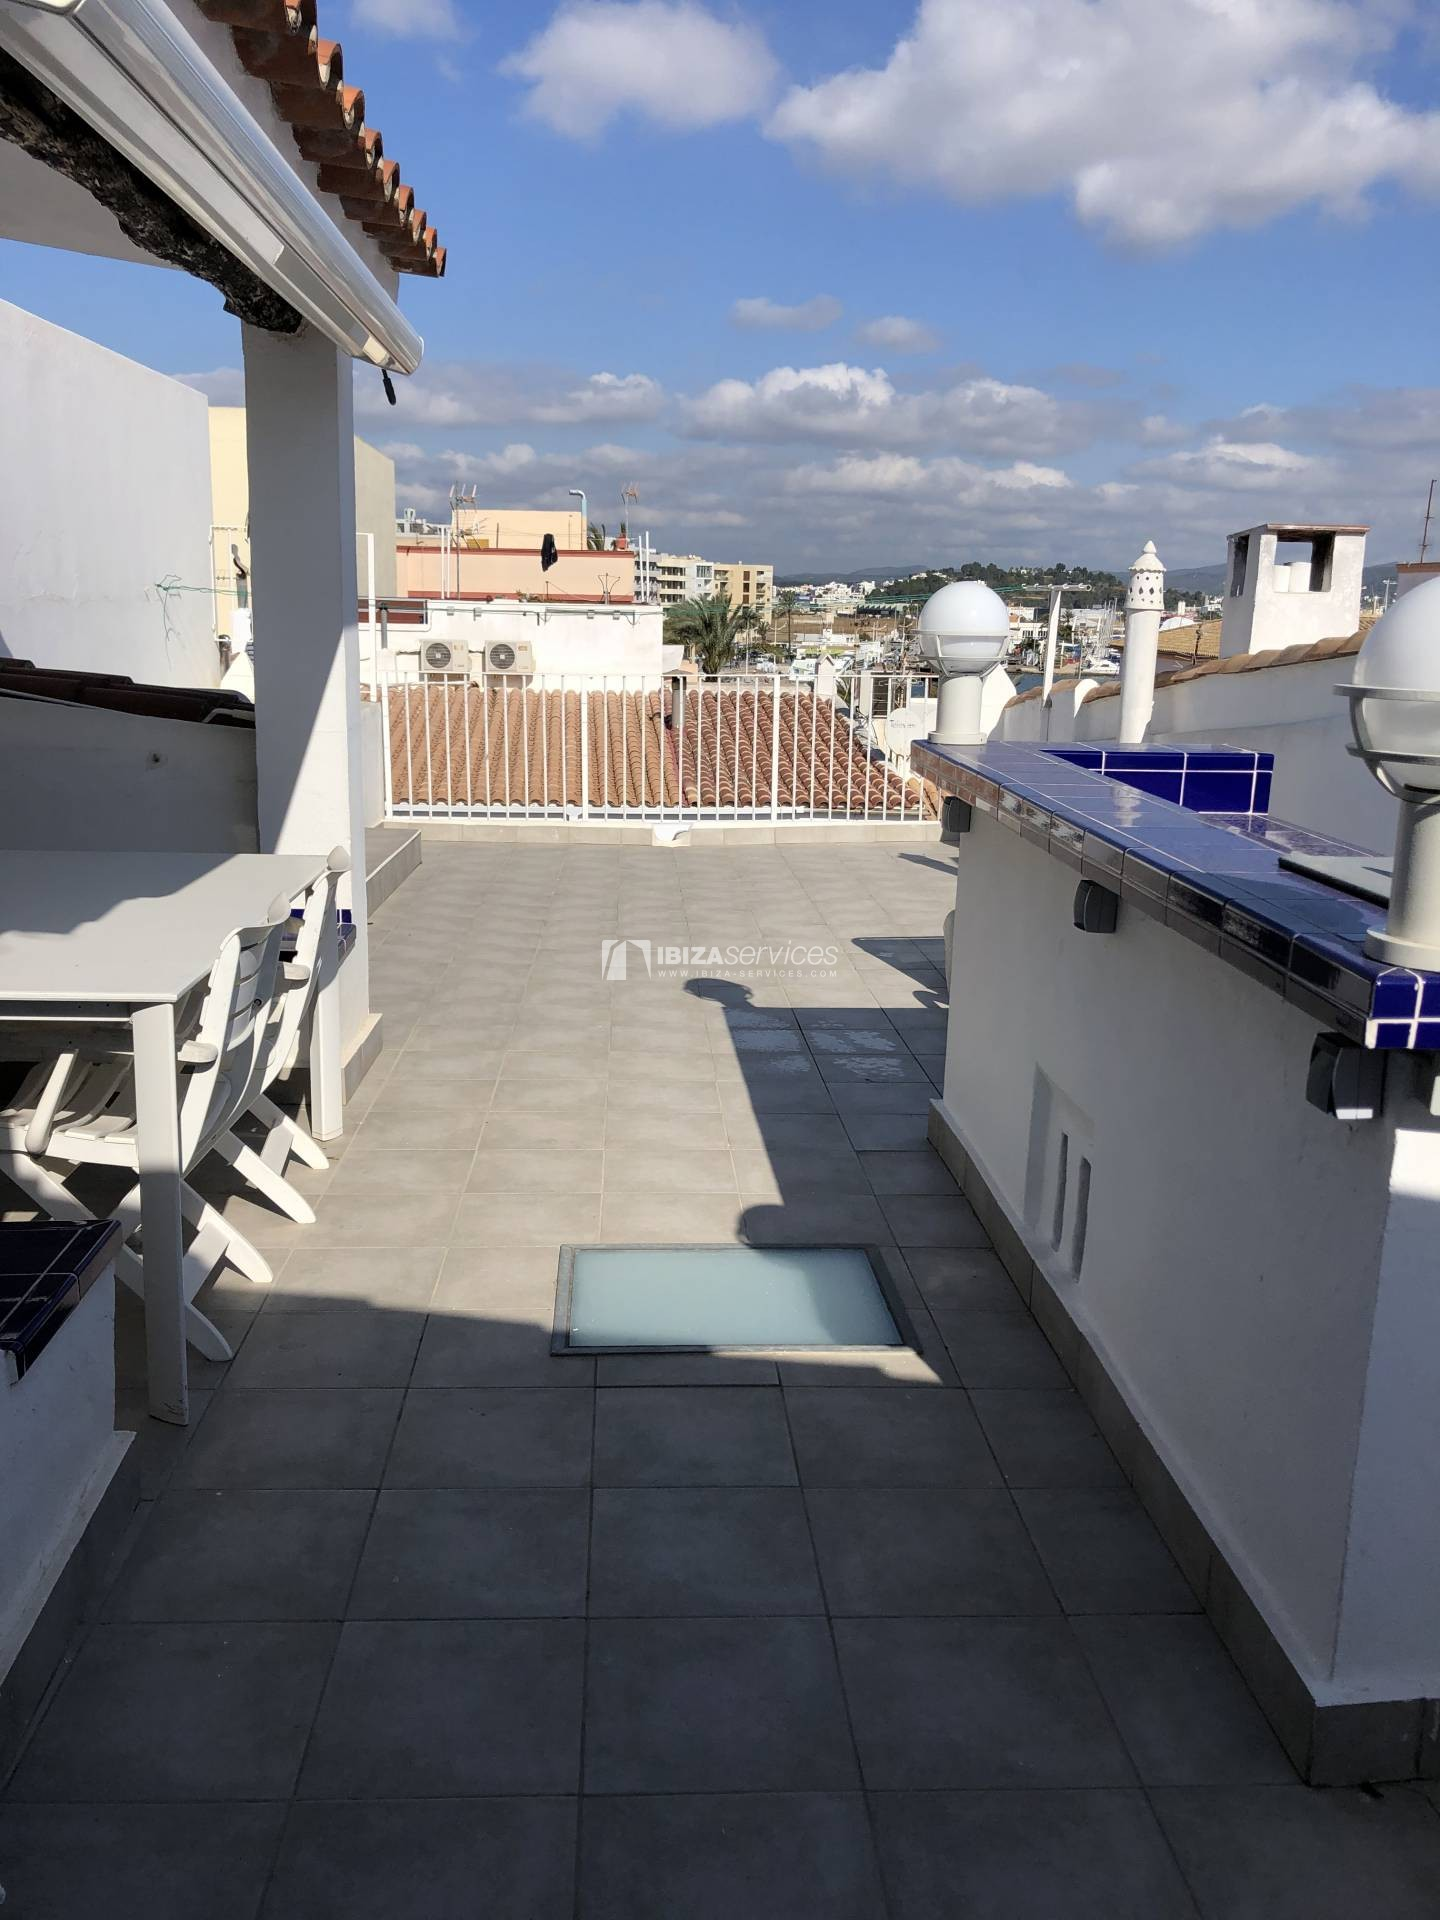 Marina Ibiza, 2 bedroom penthouse for rent perspectiva 3